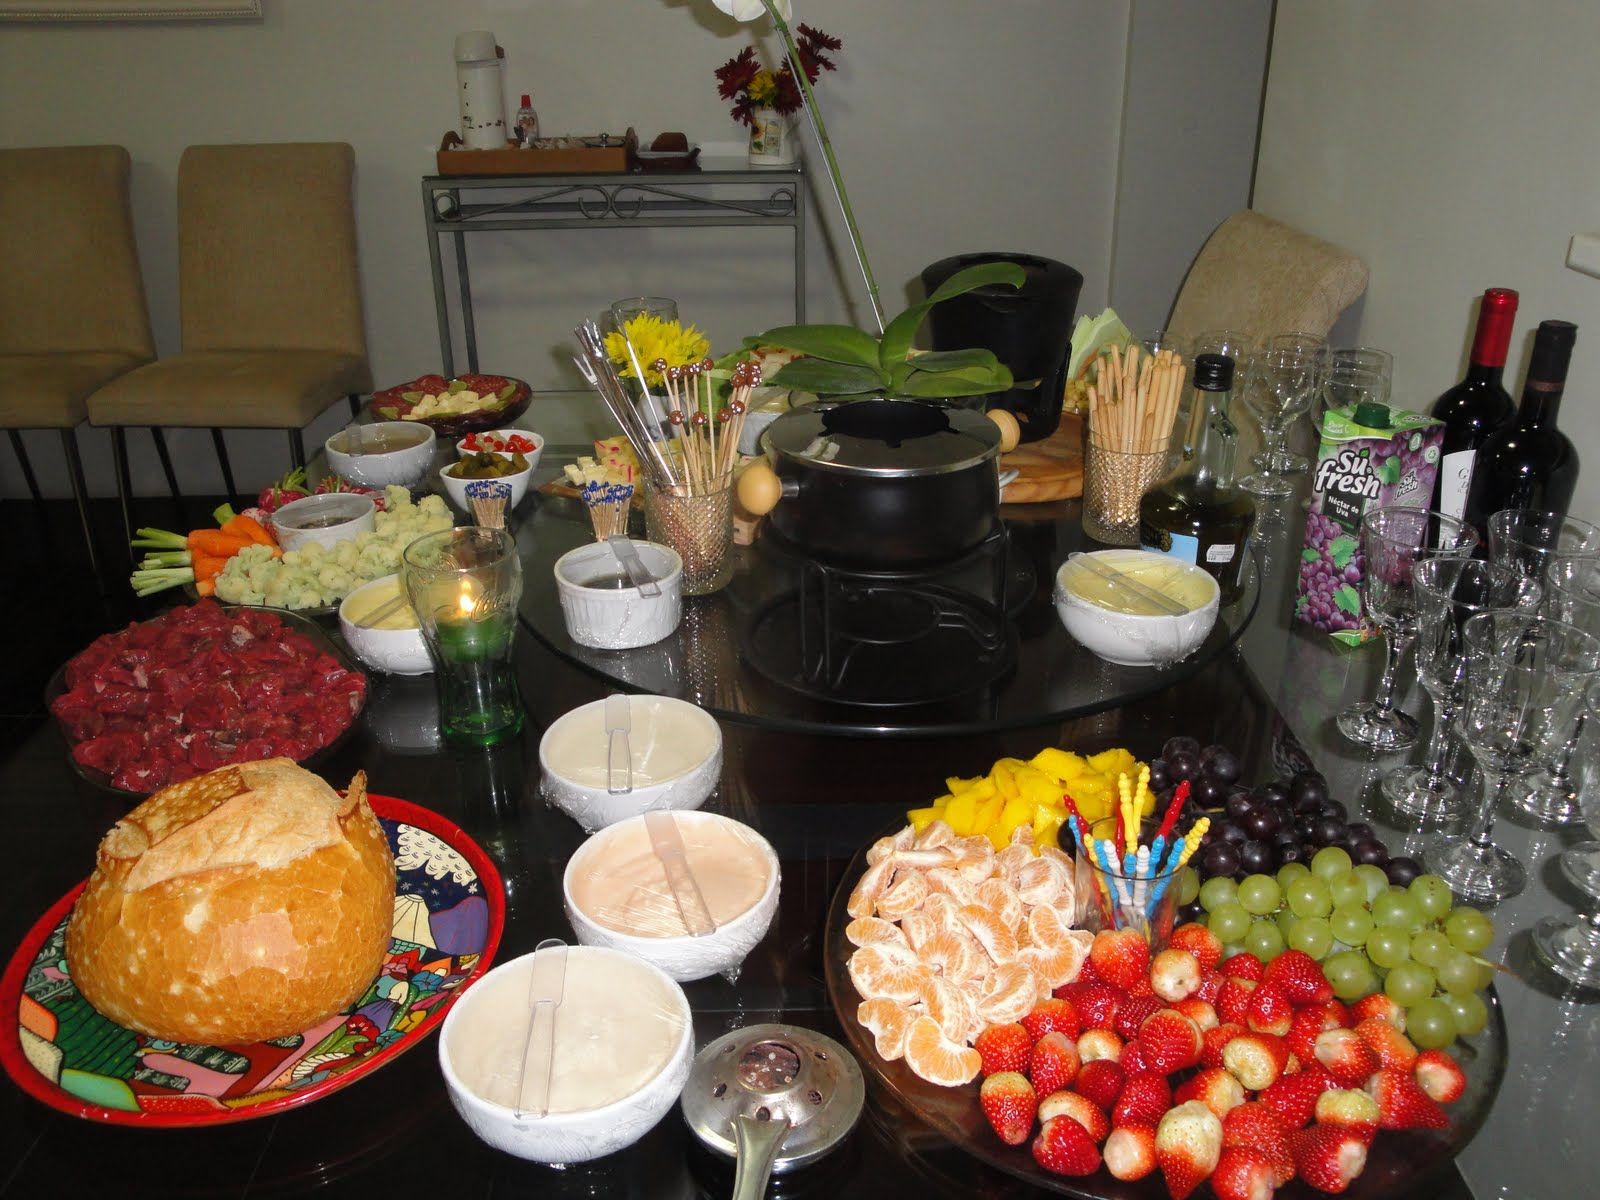 have a fondue dinner party tonite...fun, great way to talk and enjoy great food and company. Don't use oil, use organic chicken broth instead. #brothfonduerecipes